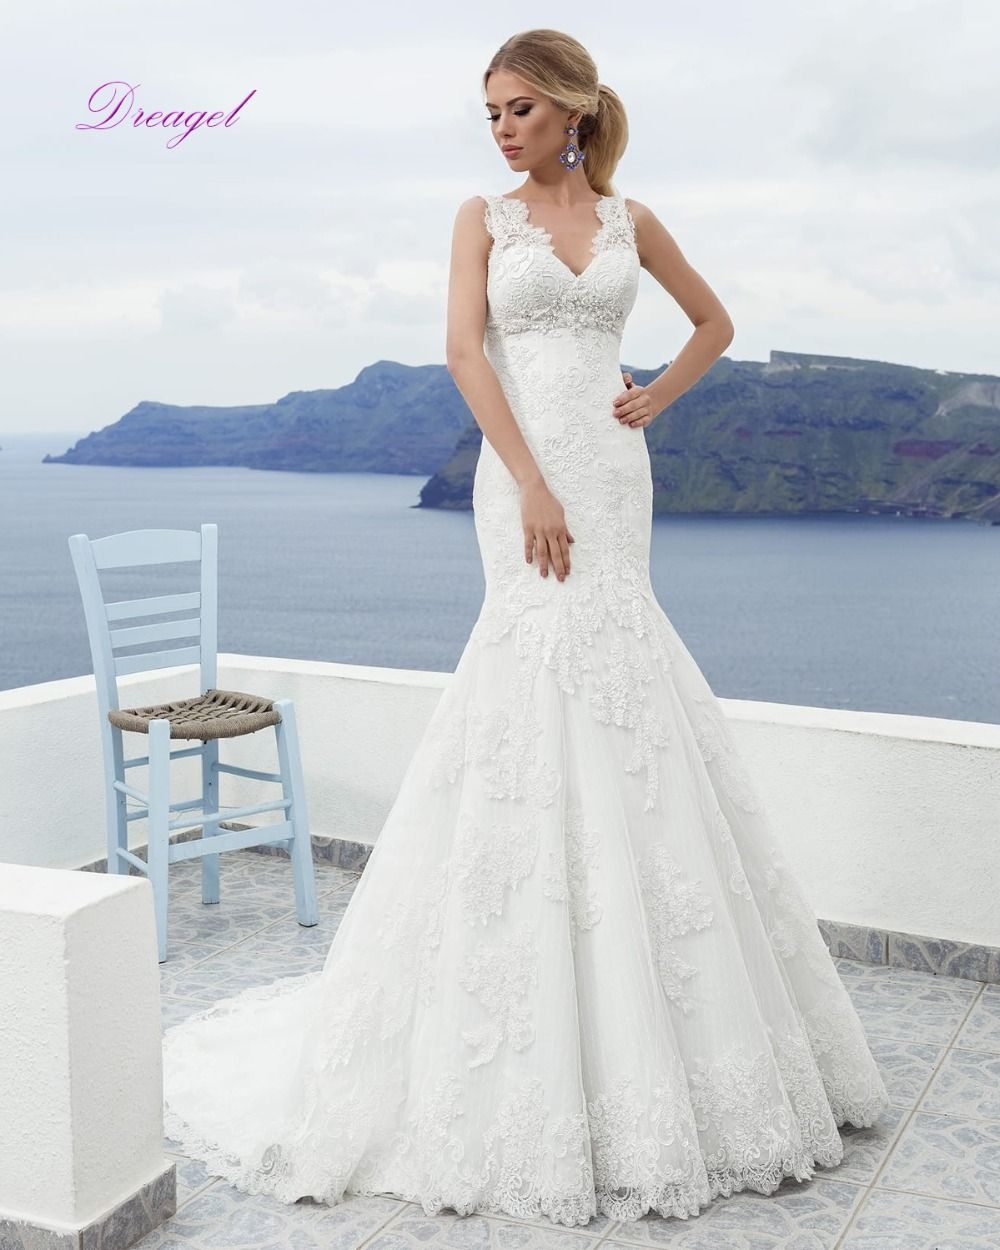 Dreagel new arrival romantic vneck mermaid lace up wedding dress